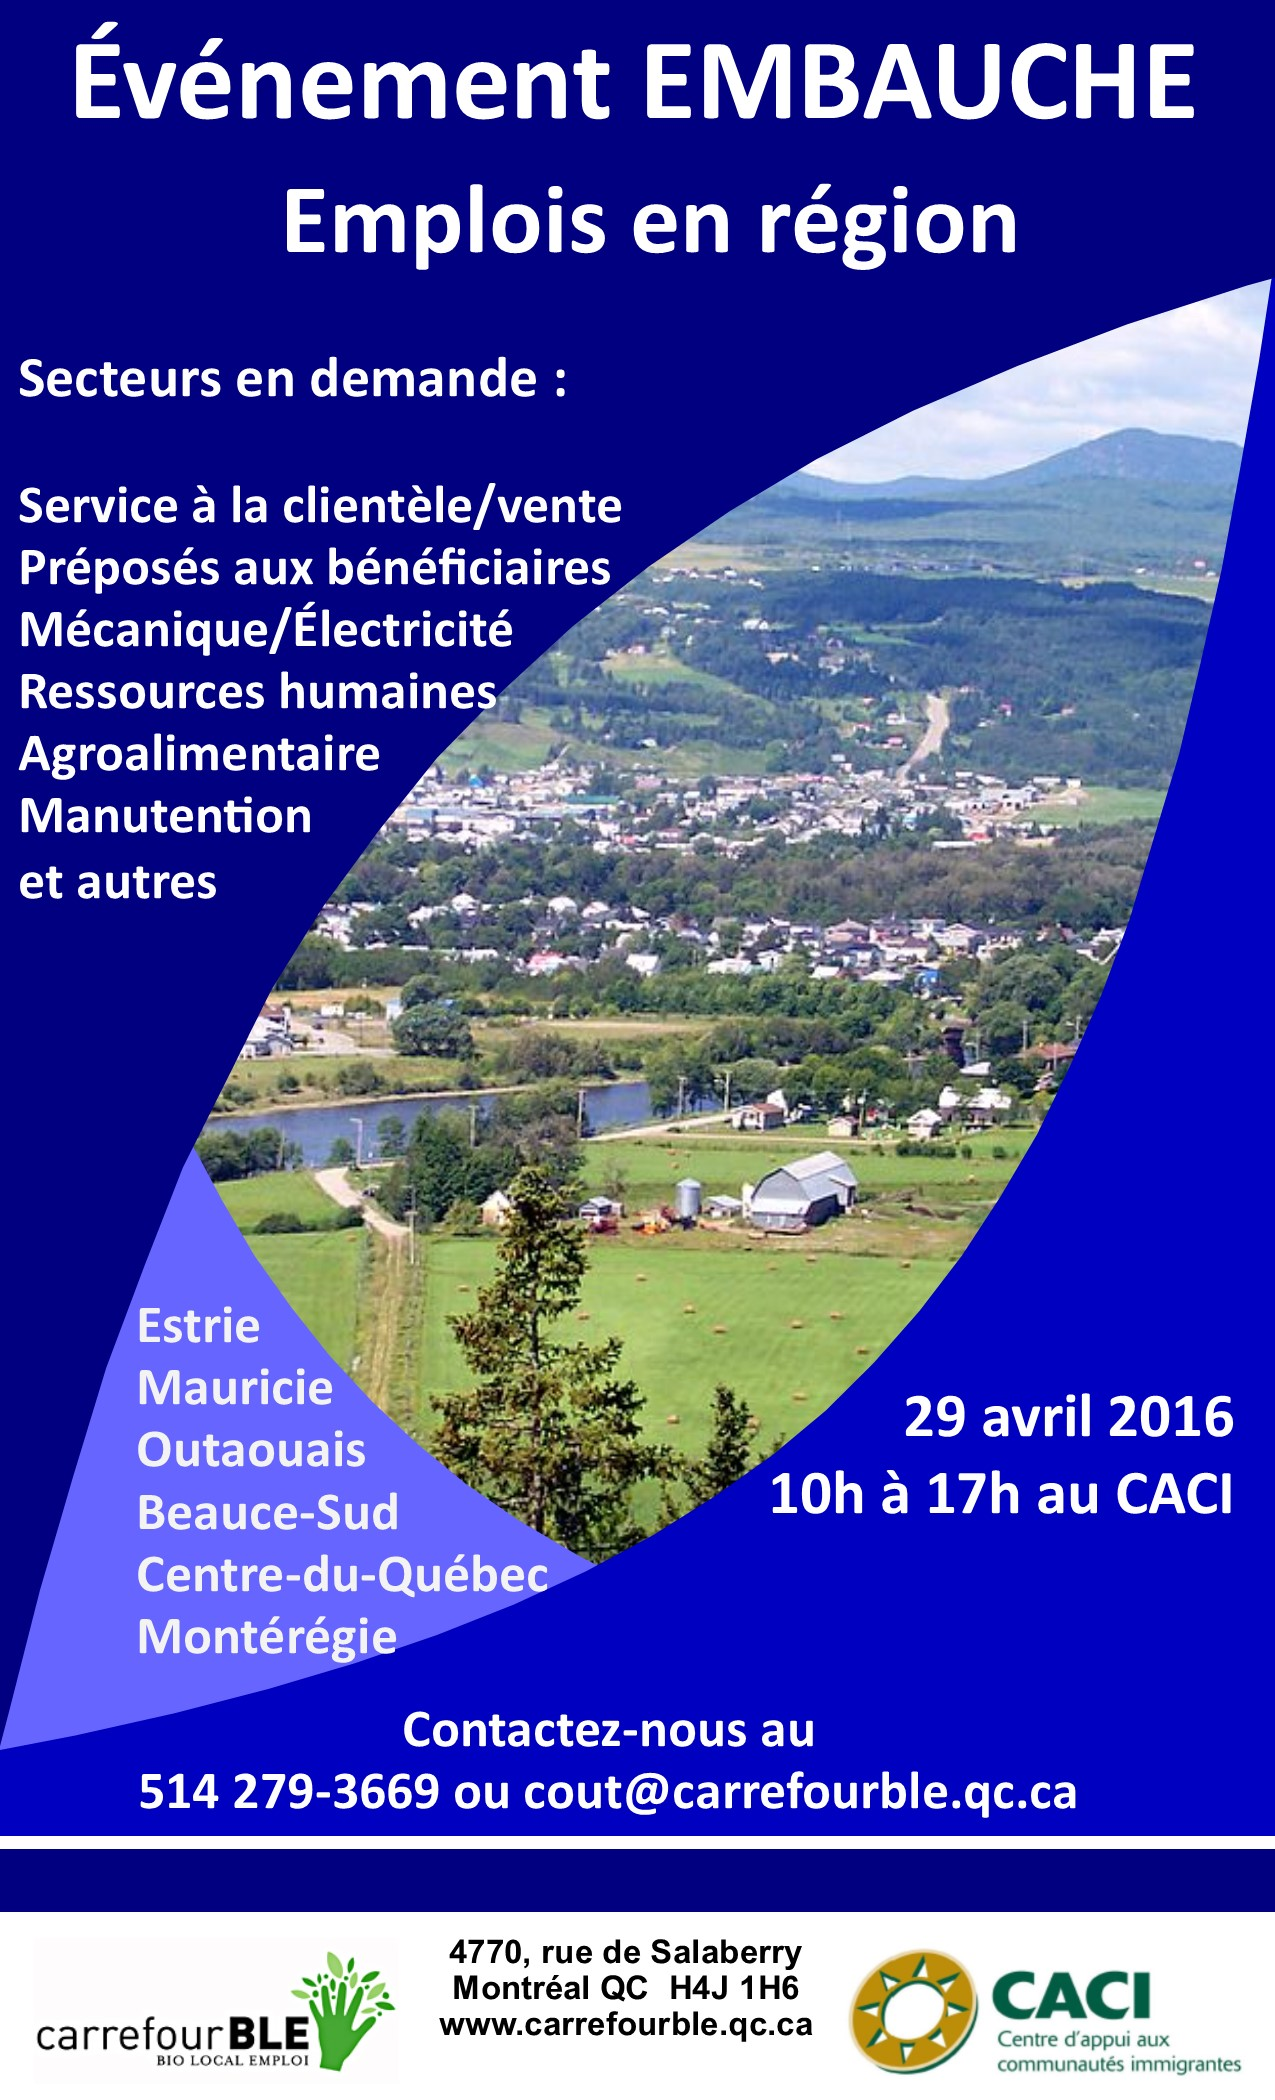 evenement_embauche1404